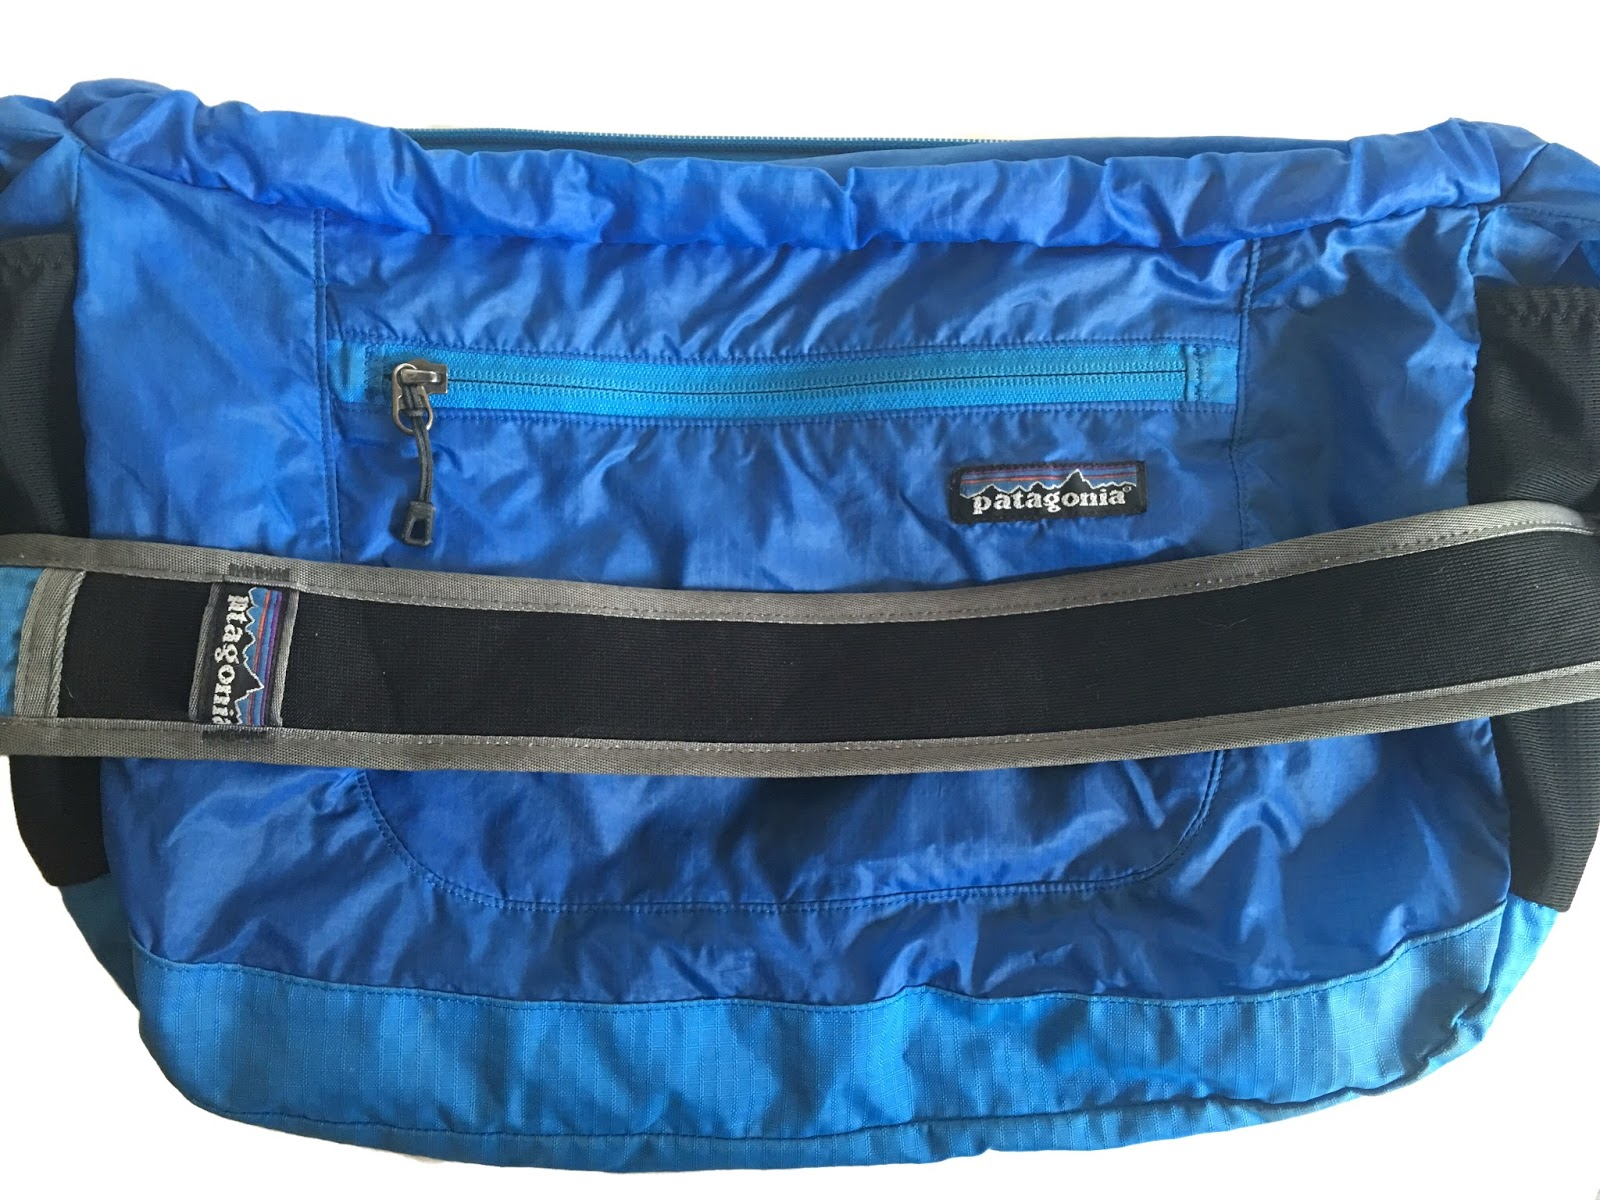 Engineering Adventure Revisiting The Lightest Camera Bag